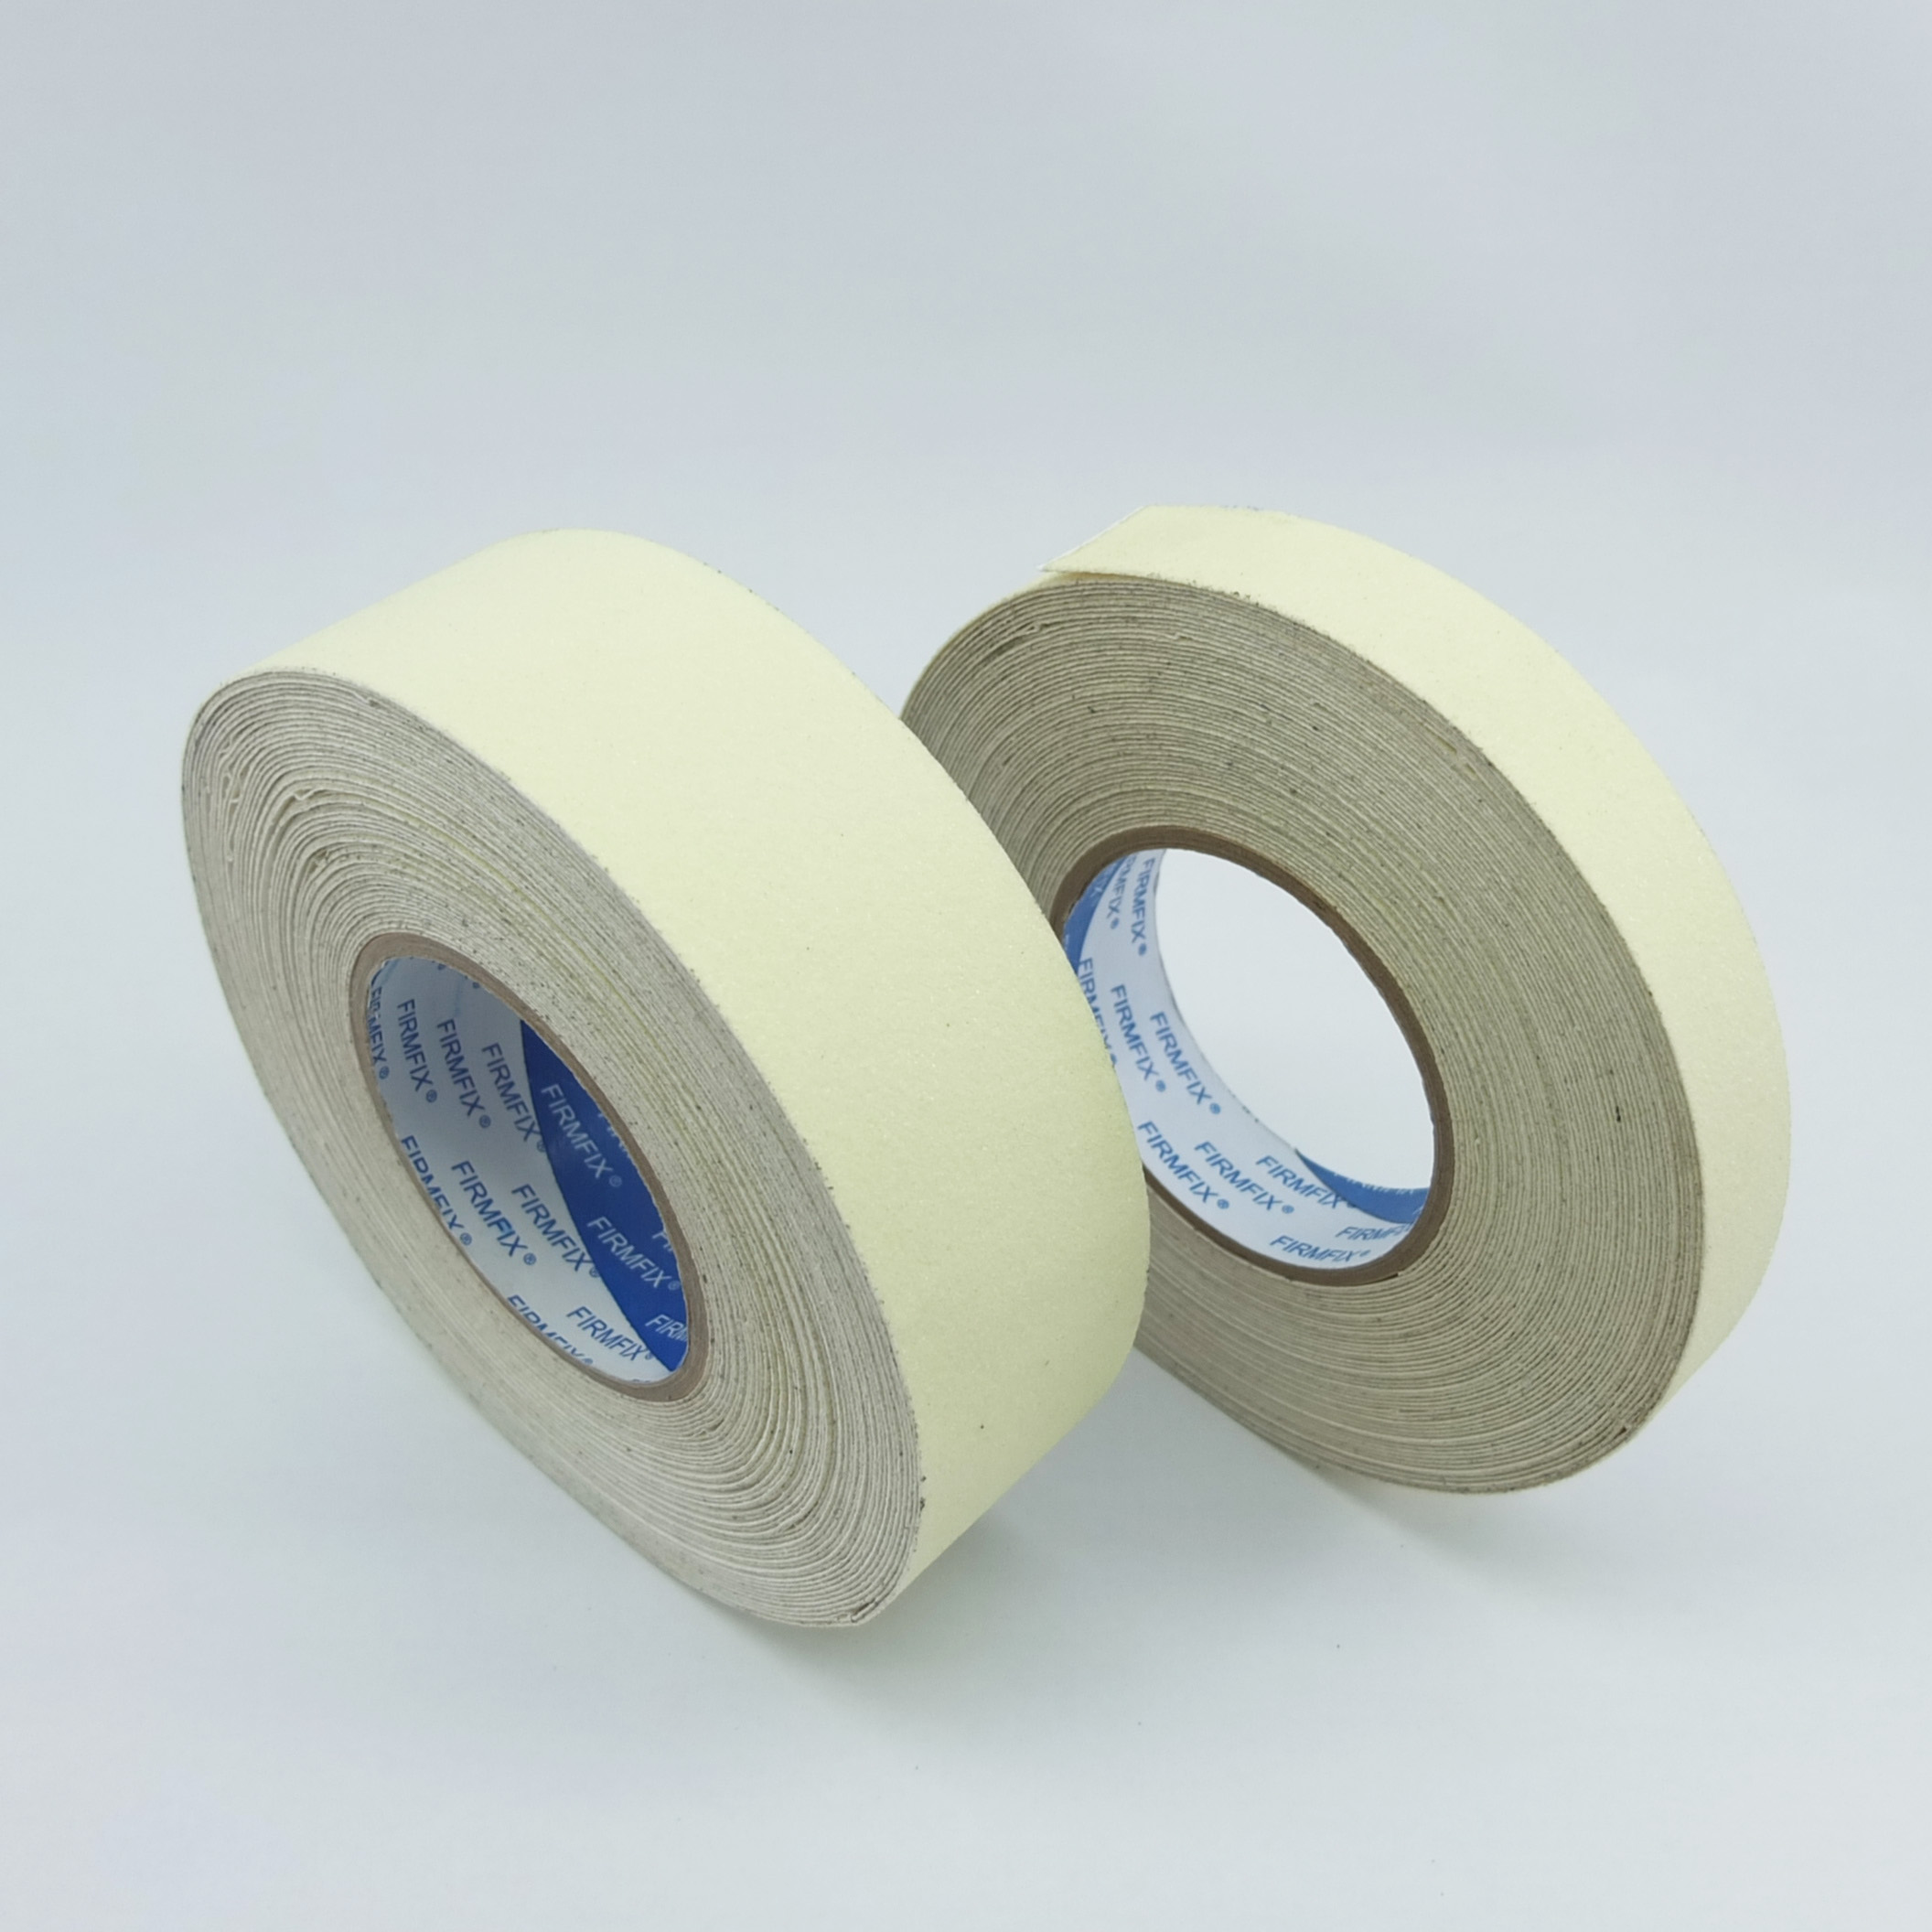 FIRMFIX Anti-slip Tape Luminous